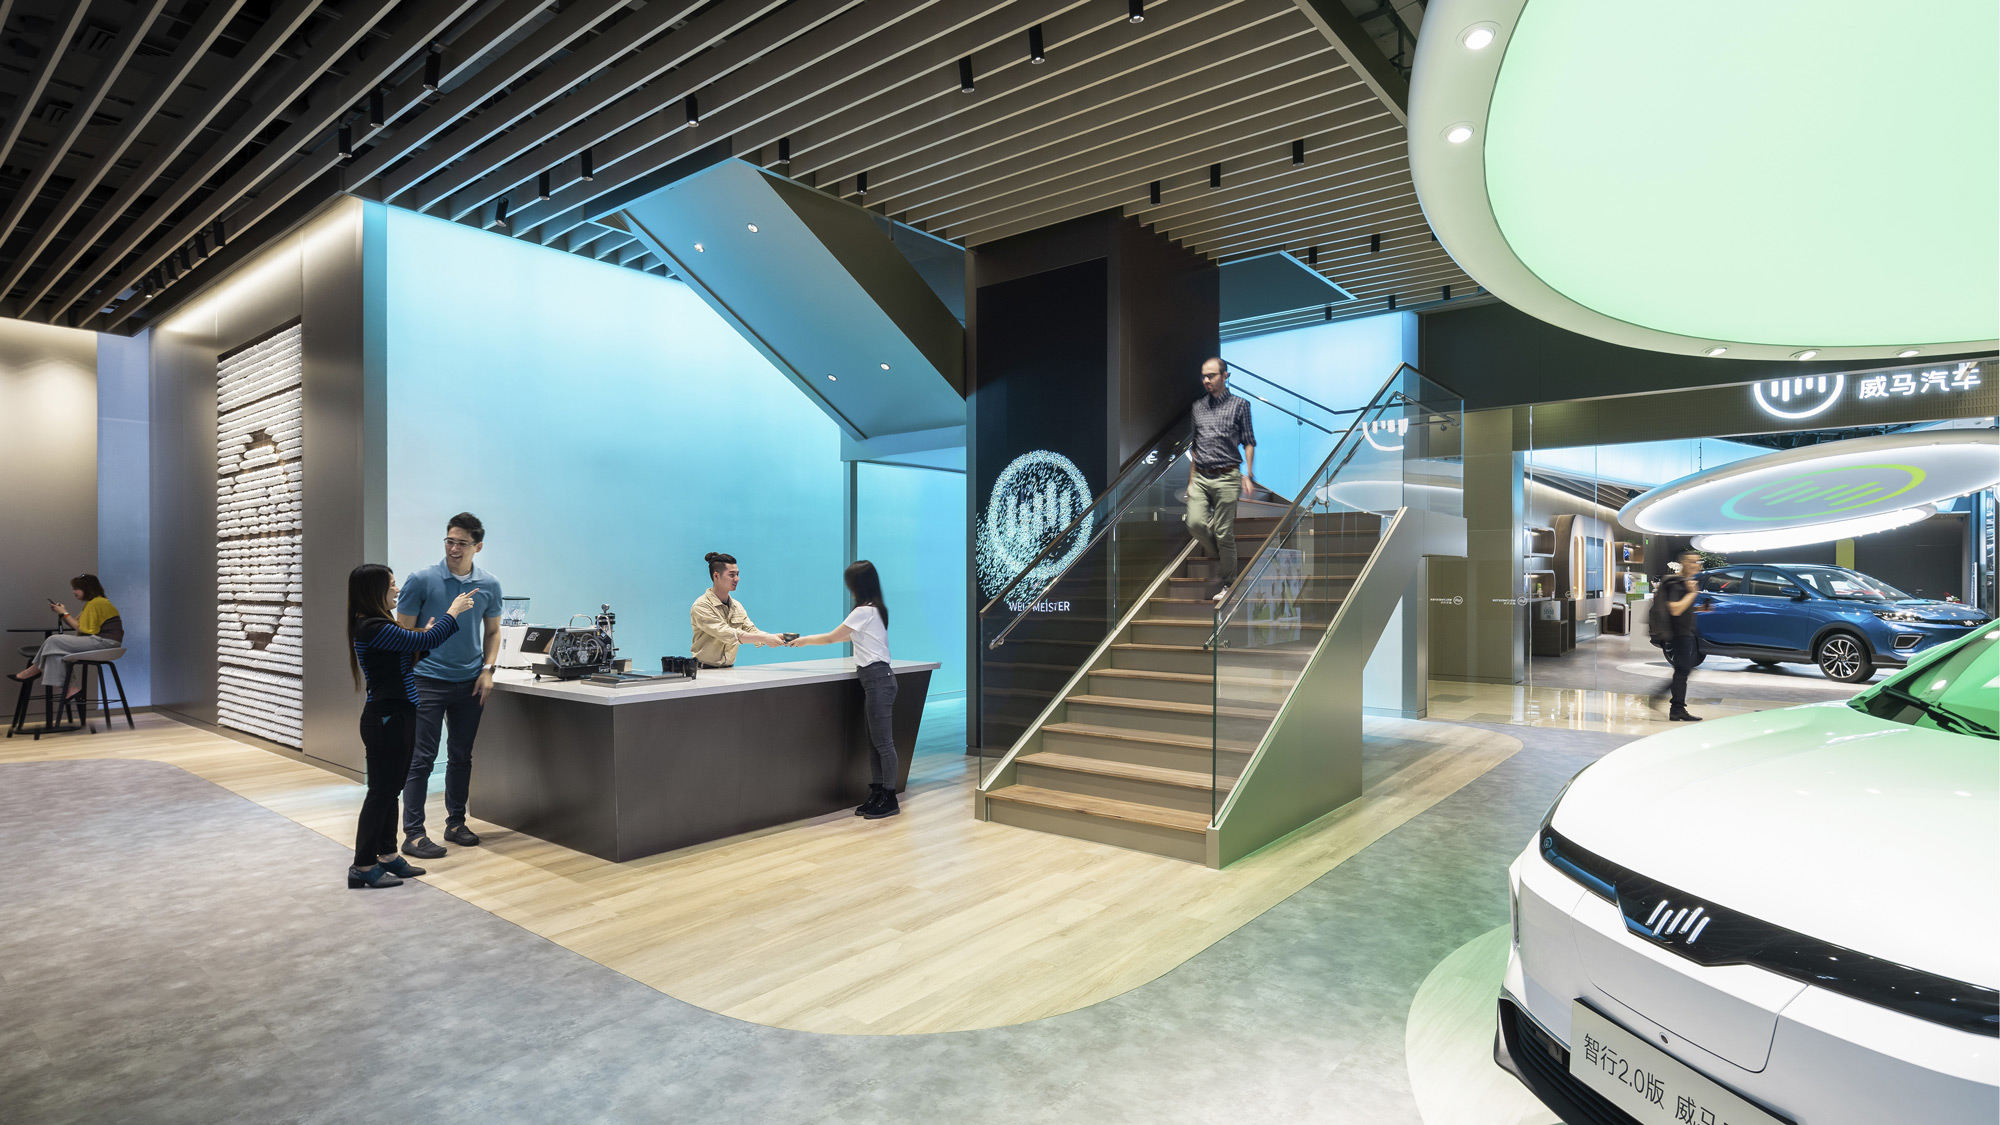 Visitors stand at a coffee bar next to a staircase and an electric vehicle showroom.